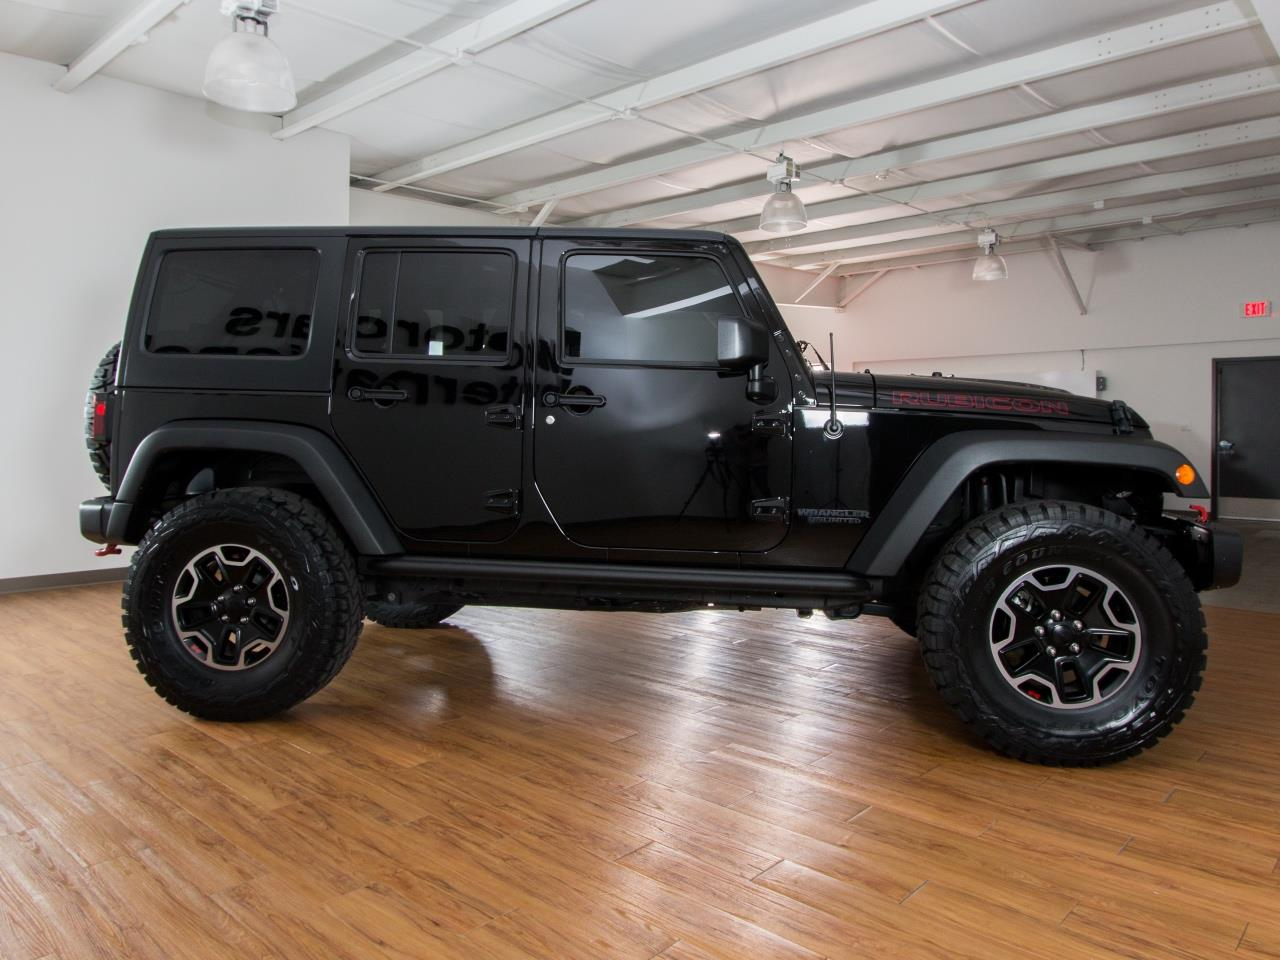 2016 Jeep Wrangler Unlimited Rubicon Sport Utility 4-Door ...